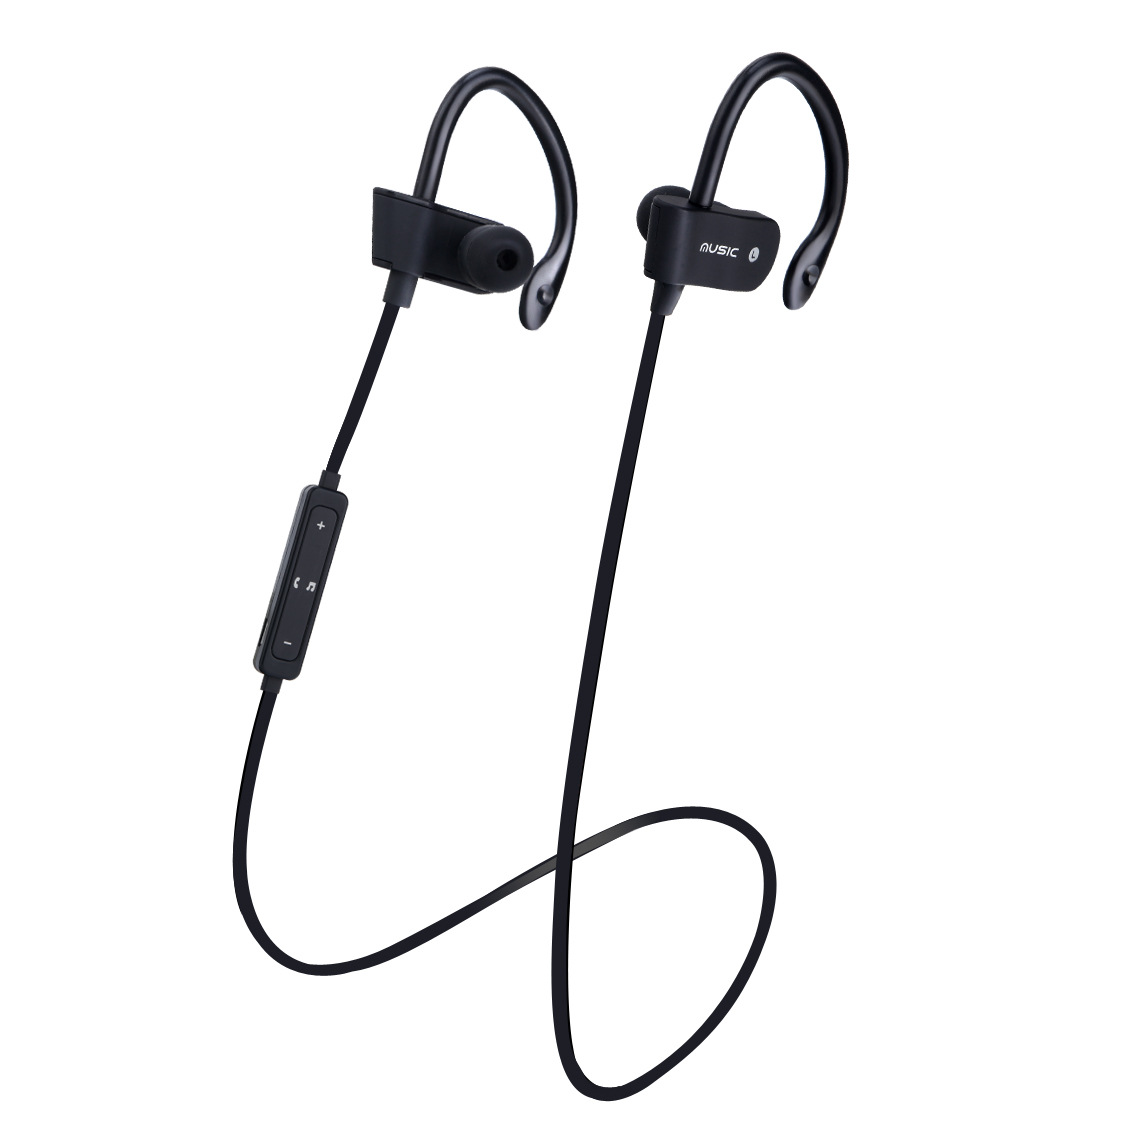 Hongsund Wireless Bluetooth 4.1 Headset Earphone Stereo Bass Music Sport Headphone Handsfree with Mic for IOS Android Smartphone ttlife bluetooth earphone s6 new wireless sport headset high fidelity music stereo headphone wiith mic for phone xiaomi original